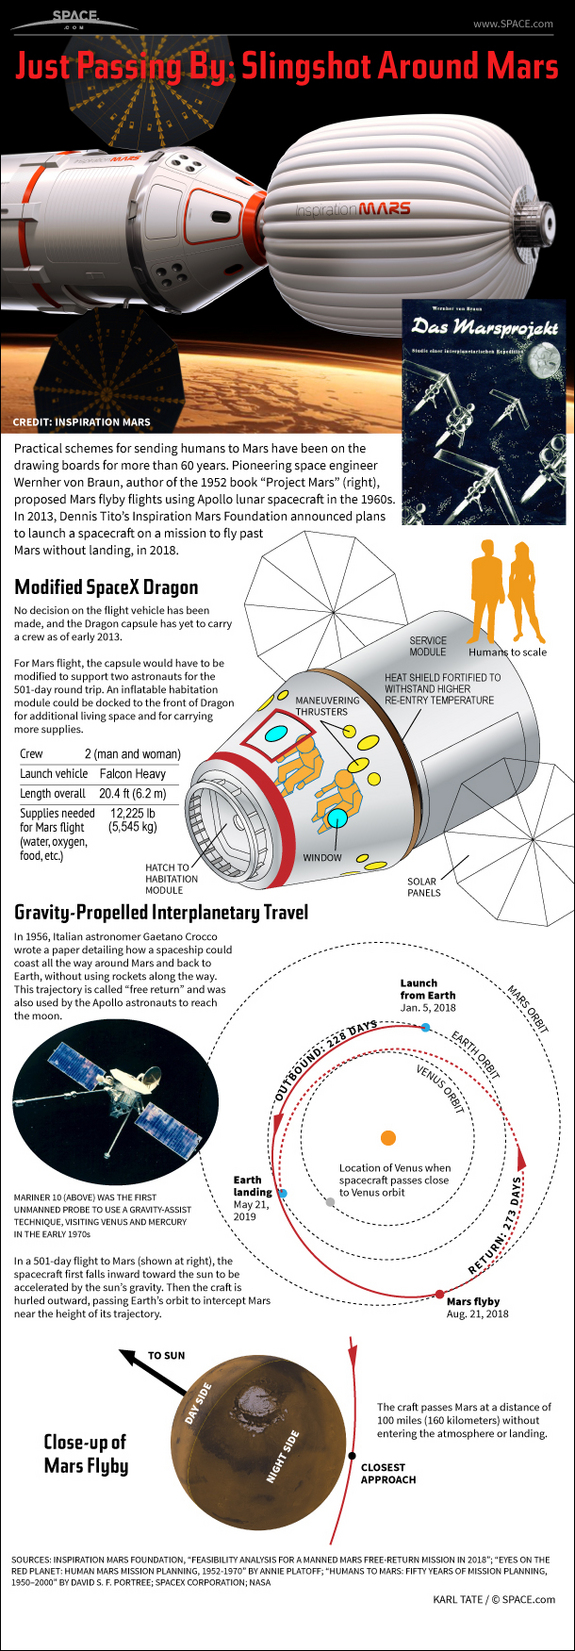 Find out about Dennis Tito's daring proposal to send a man and a woman on a 501-day space flight around the planet Mars and back, in this SPACE.com Infographic.